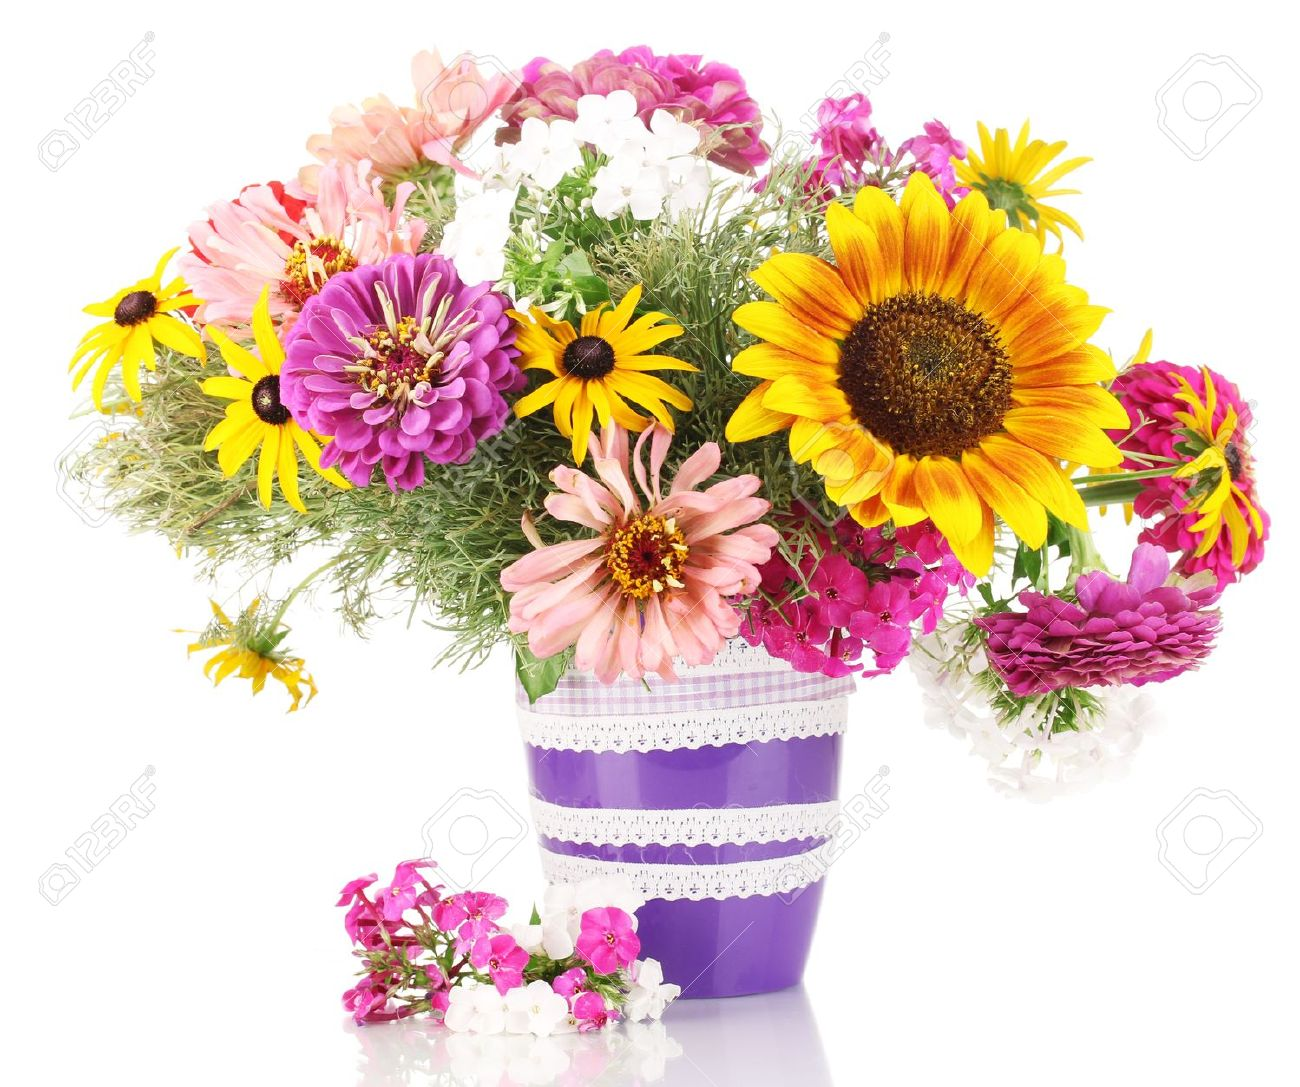 Big bunch of flowers image picture royalty free stock Free bunch of flowers - ClipartFest picture royalty free stock